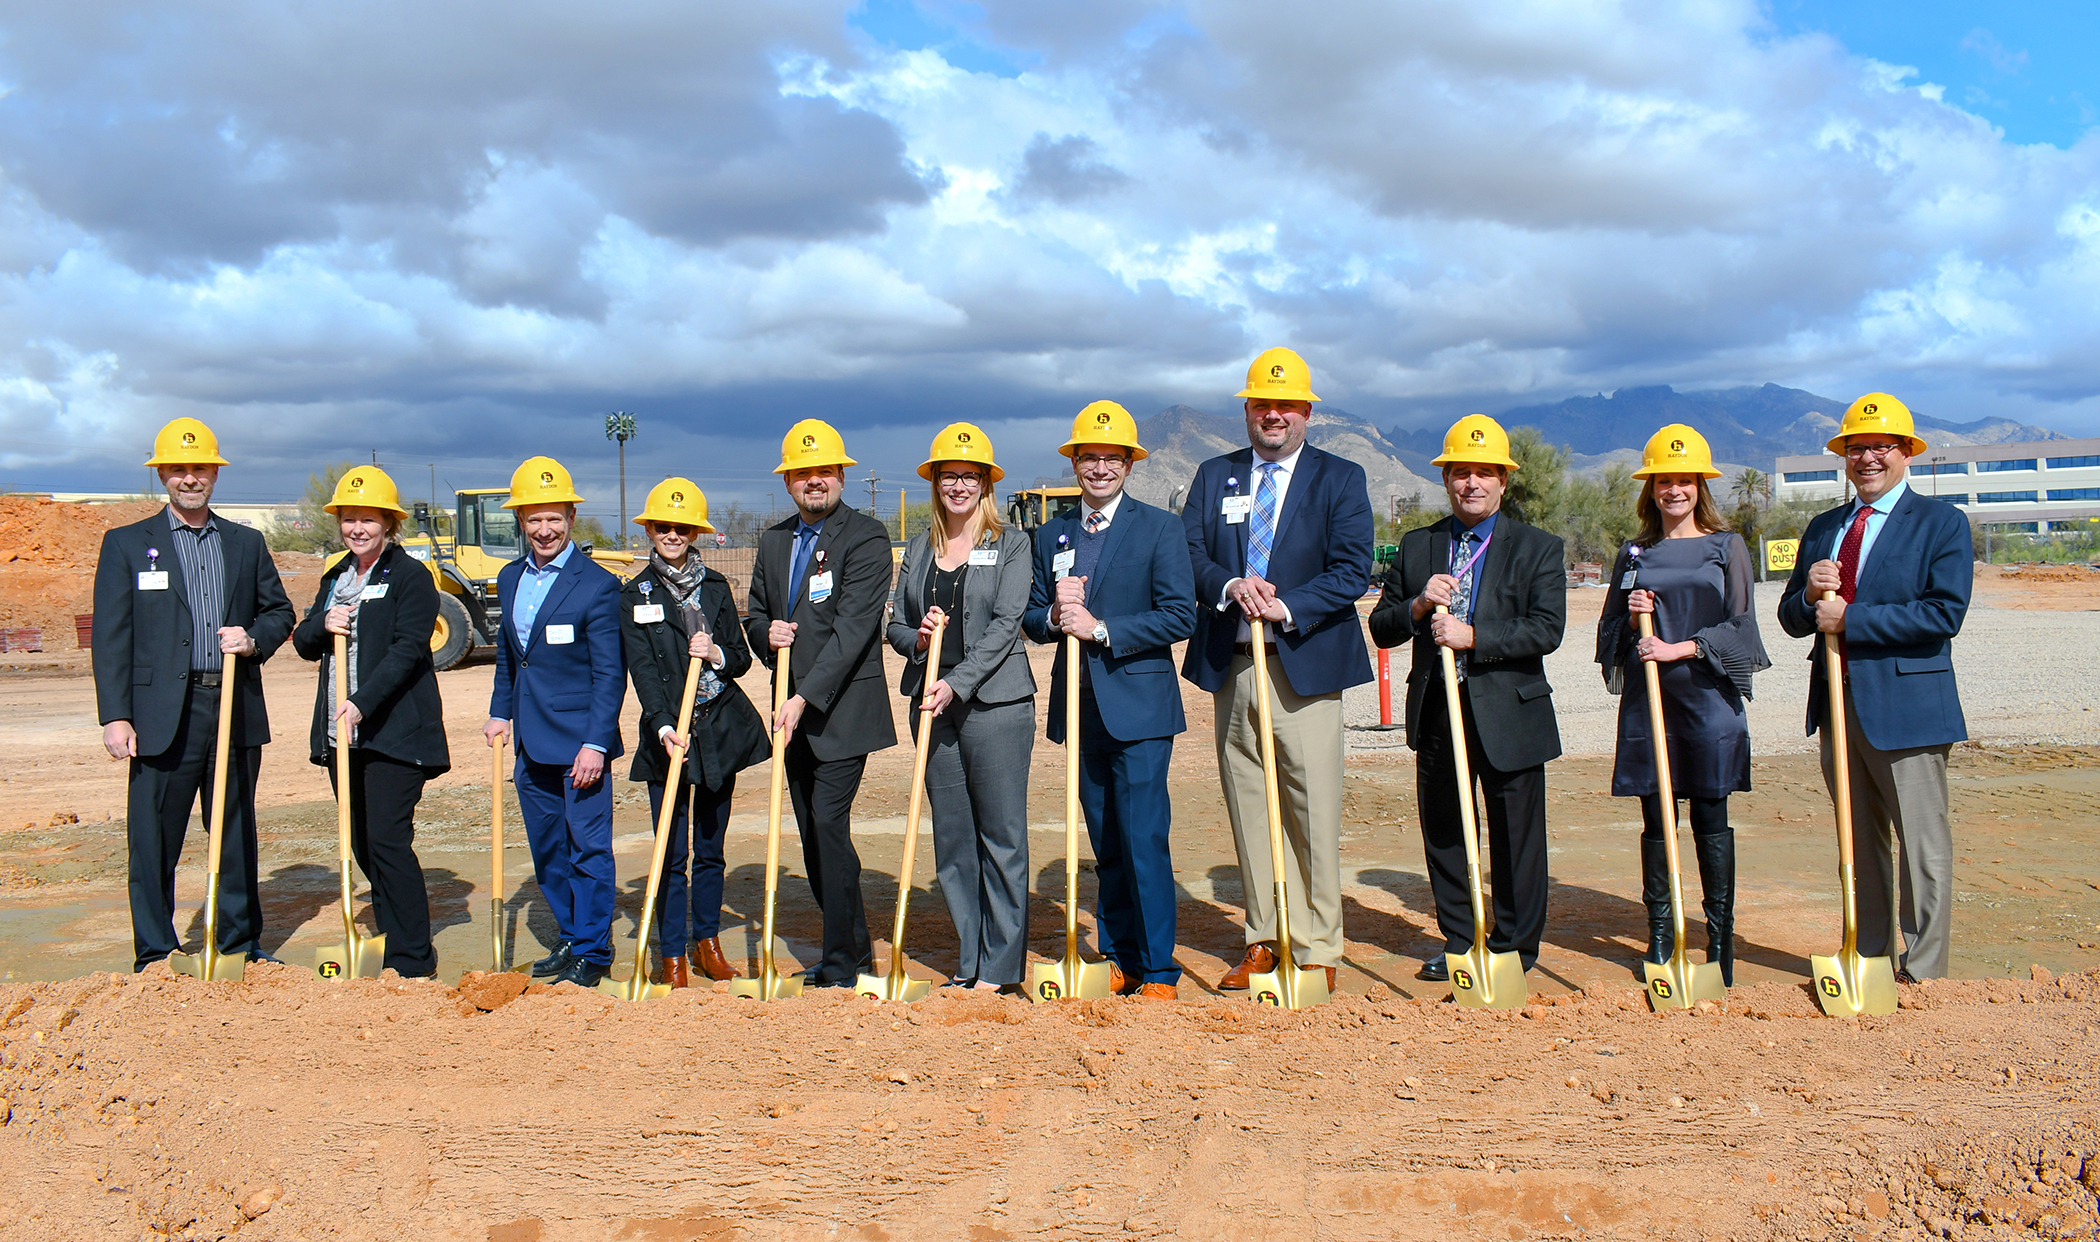 NexCore Group Breaks Ground on 61,000 s.f. Post-Acute Care Center of Excellence in Tucson, Ariz.